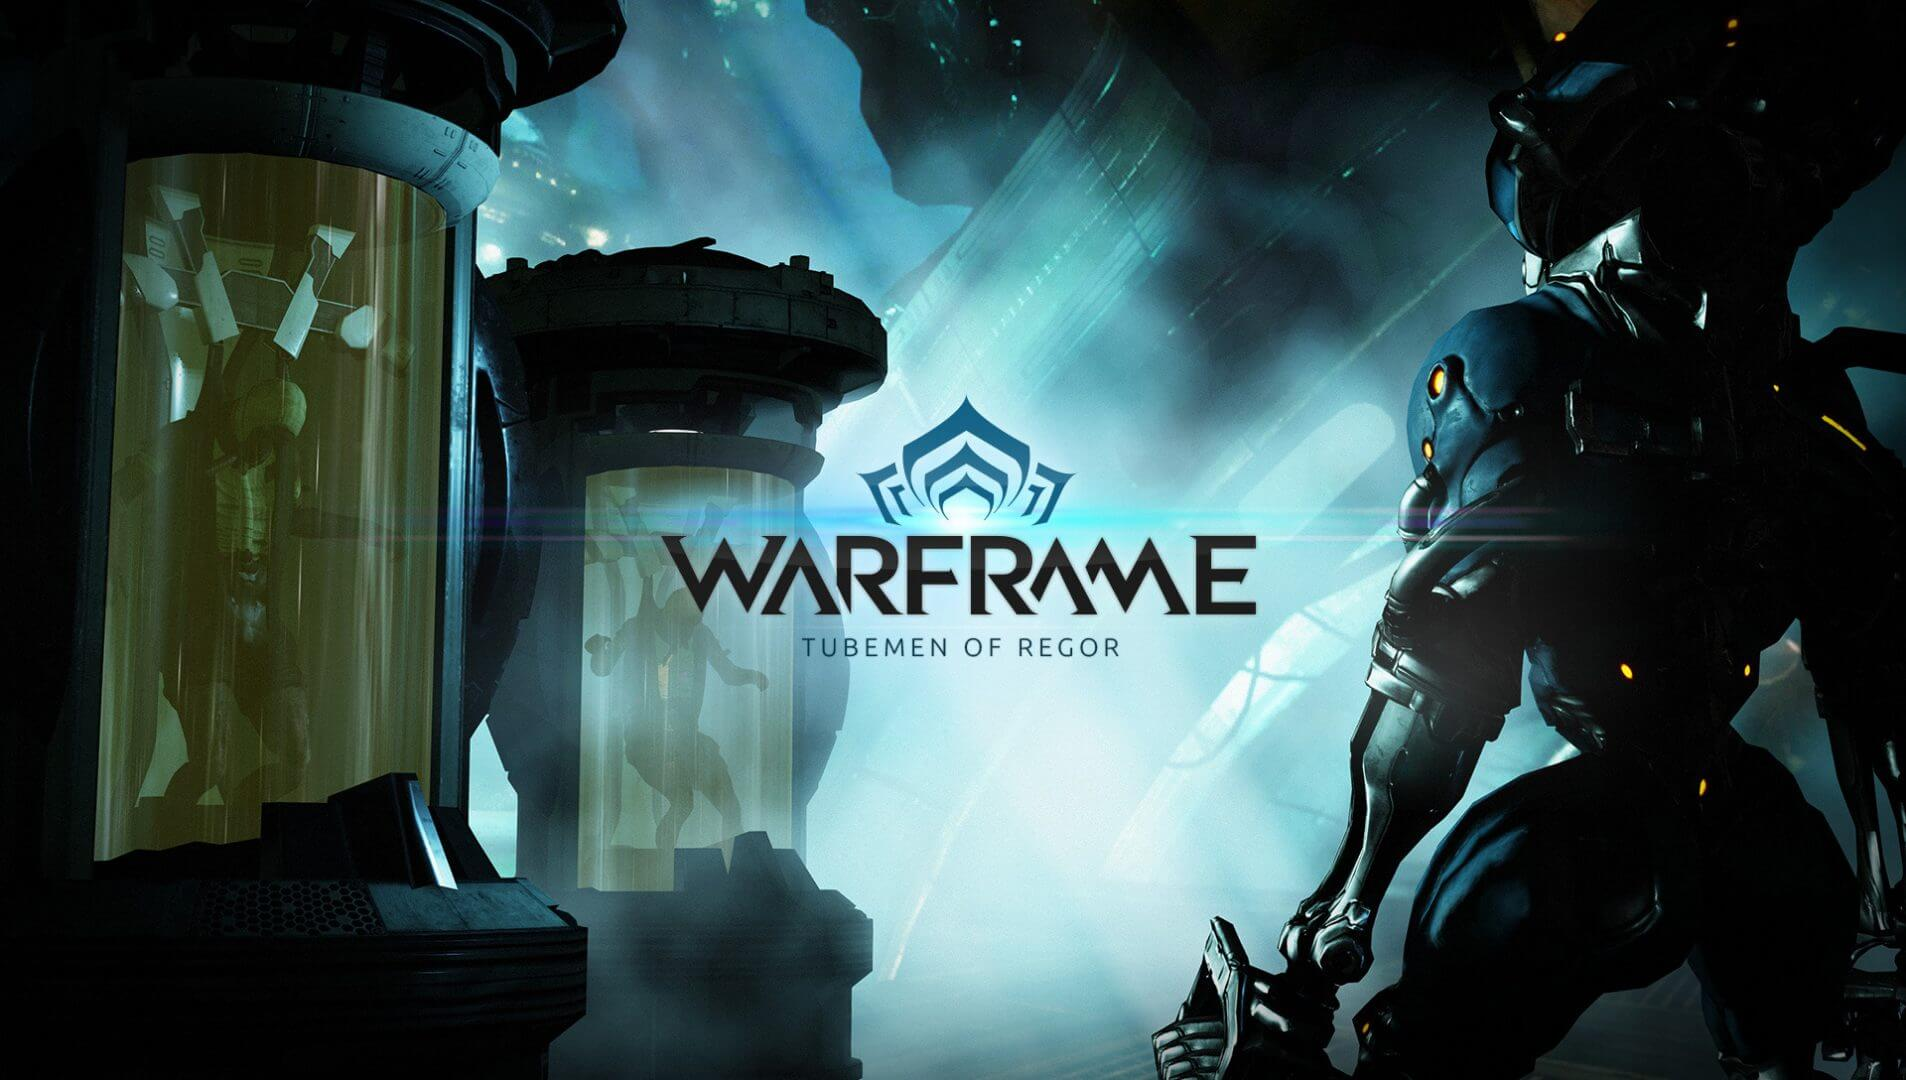 Warframe Gets Tubemen Of Regor Update